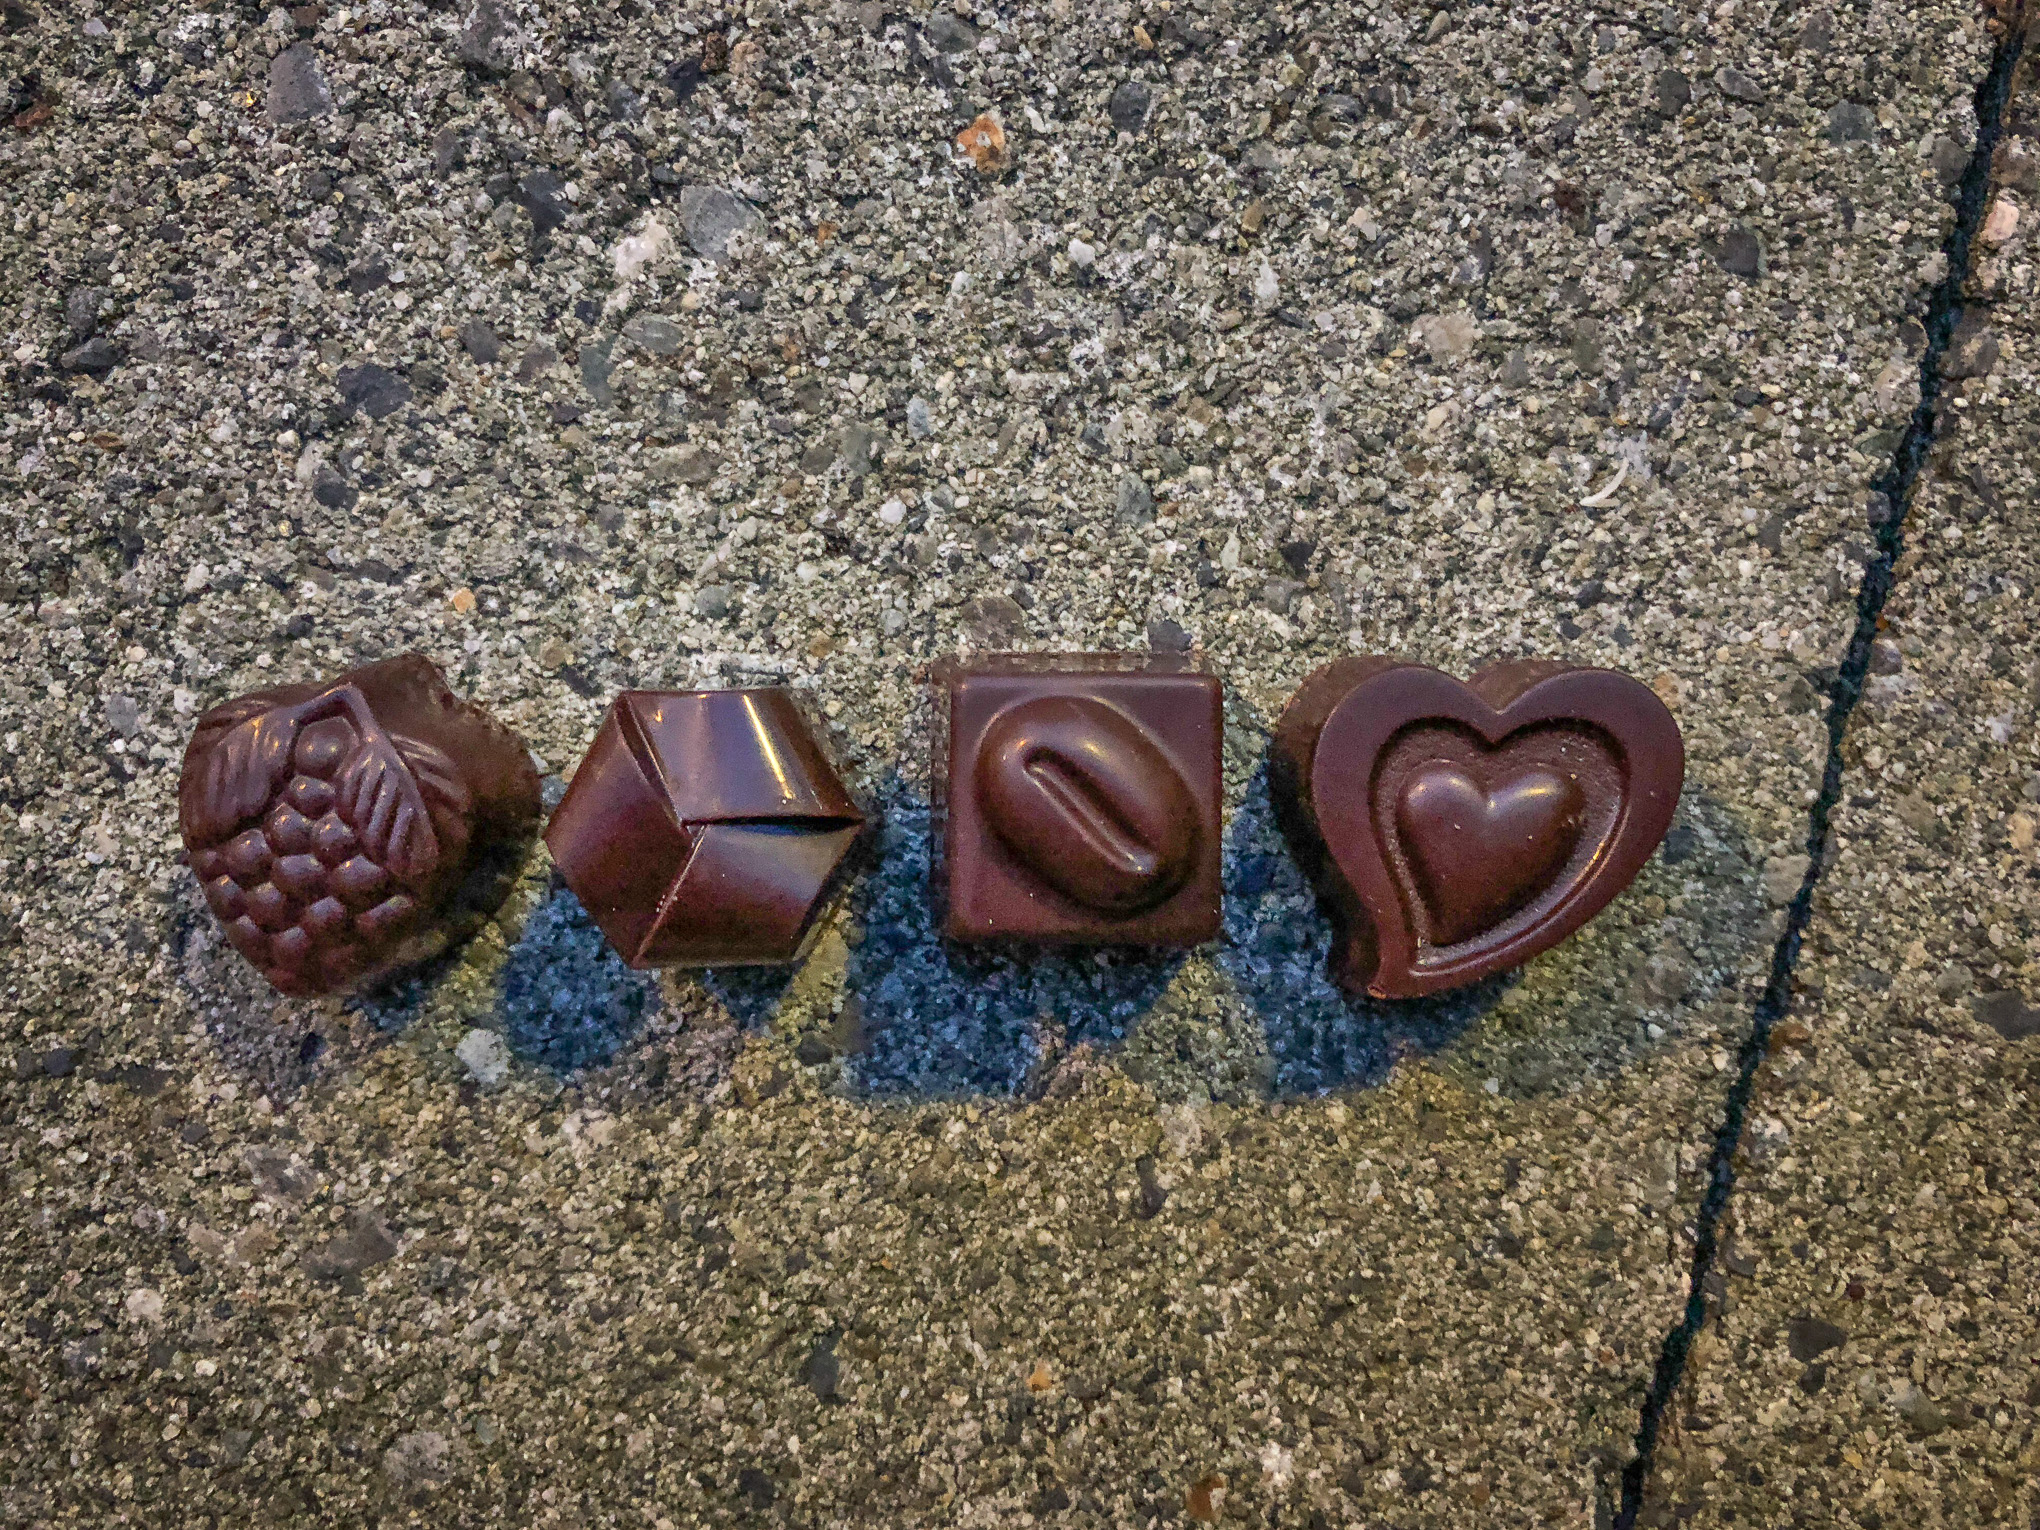 Four pieces of chocolate candies